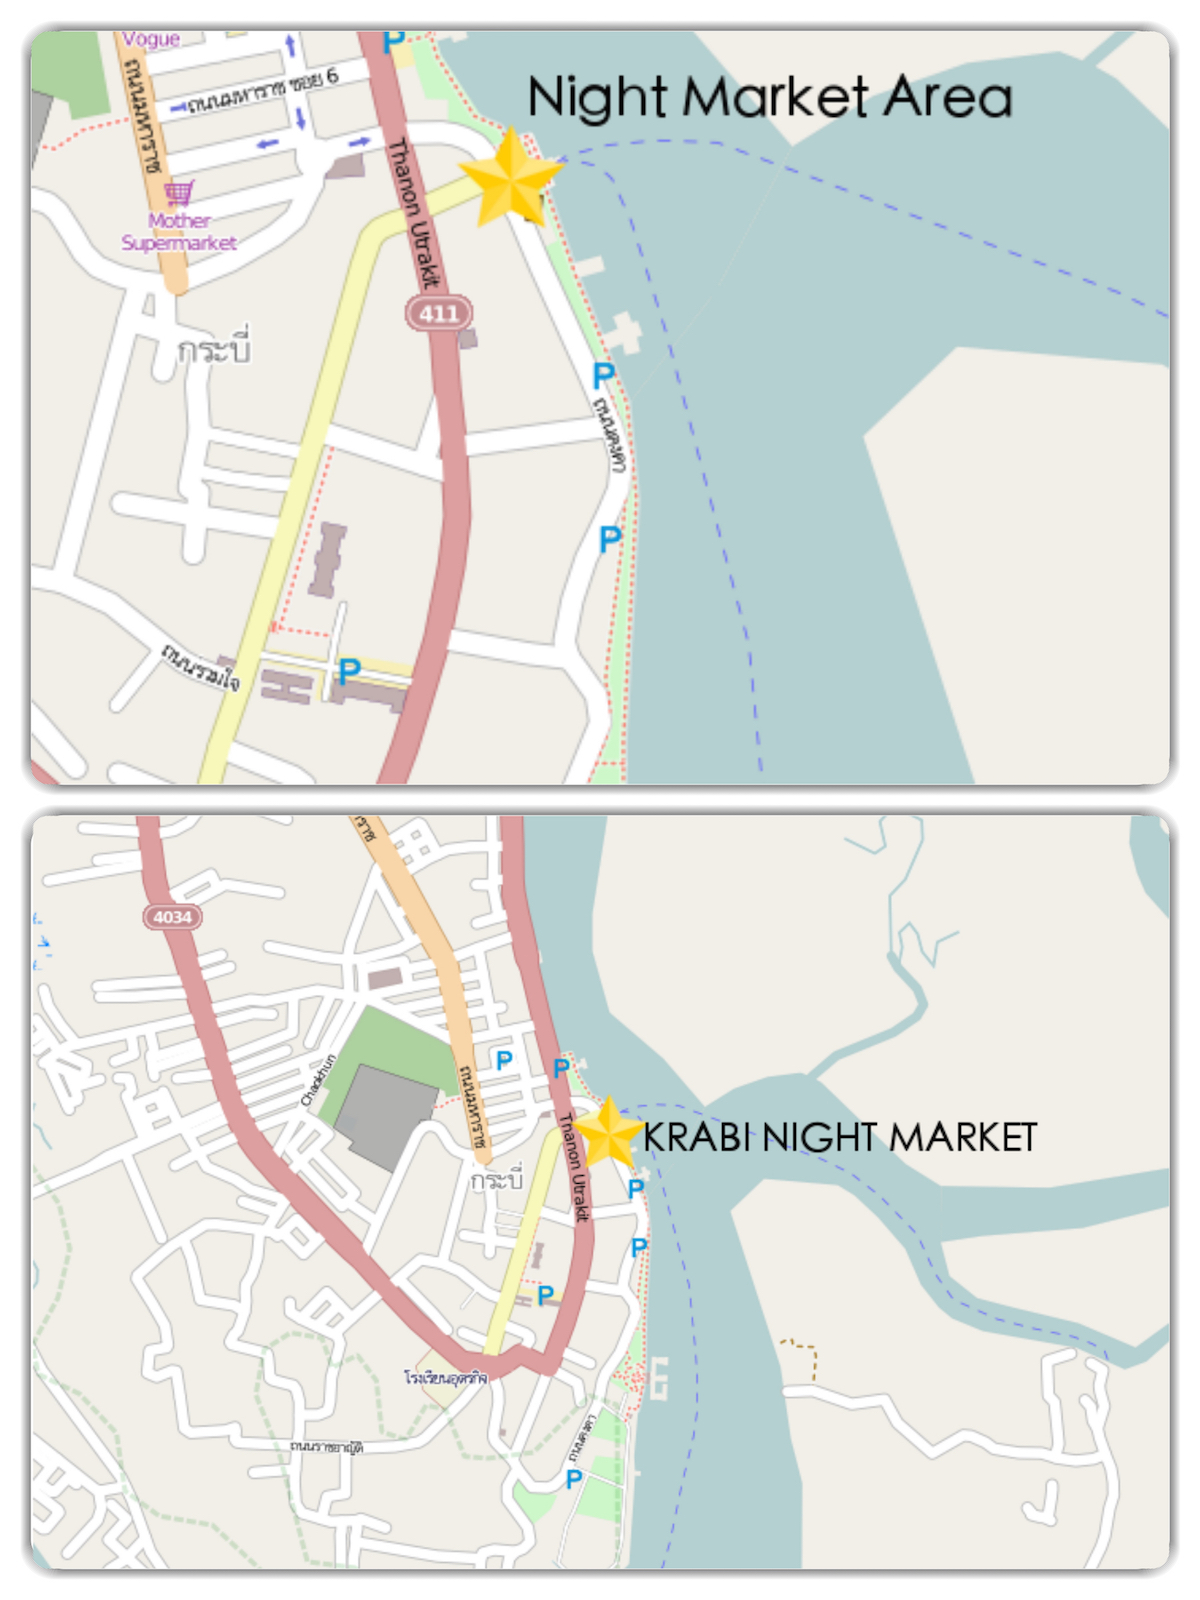 Krabi Night Market Map